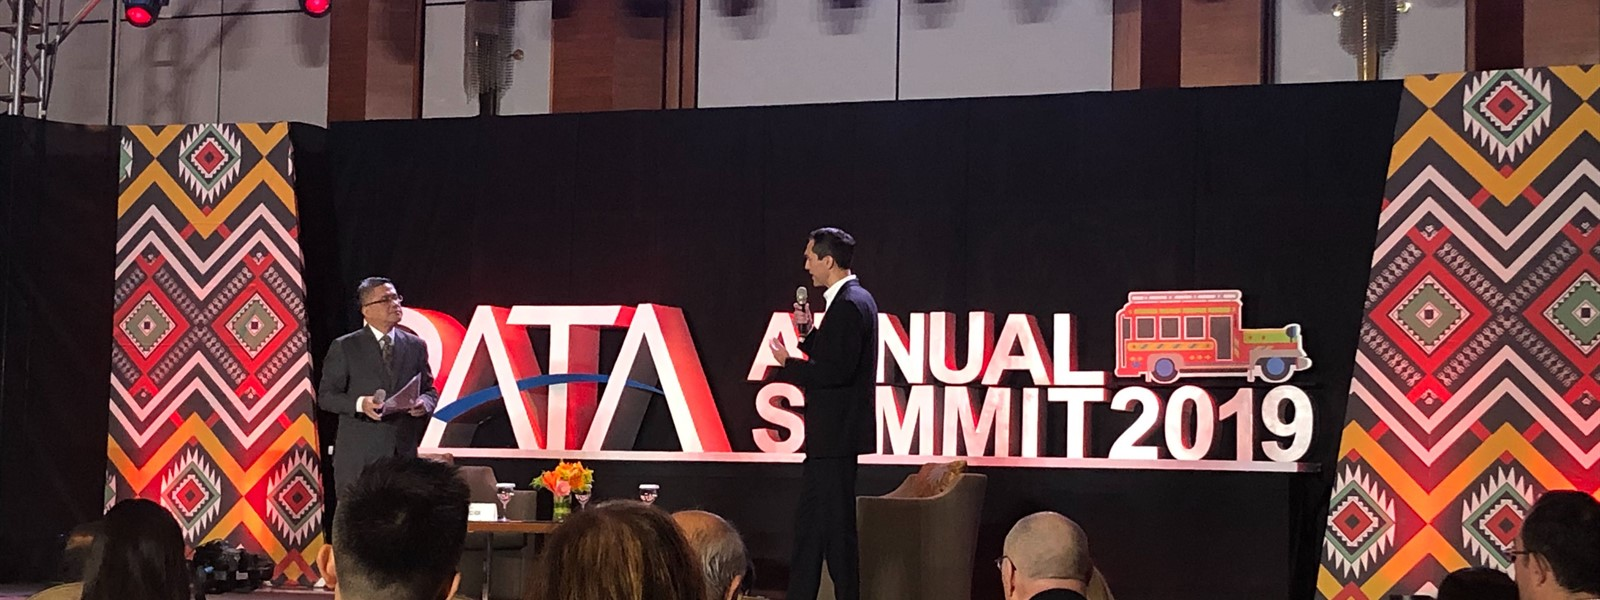 Picture of a person giving a talk on stage at the PATA Annual Summit.